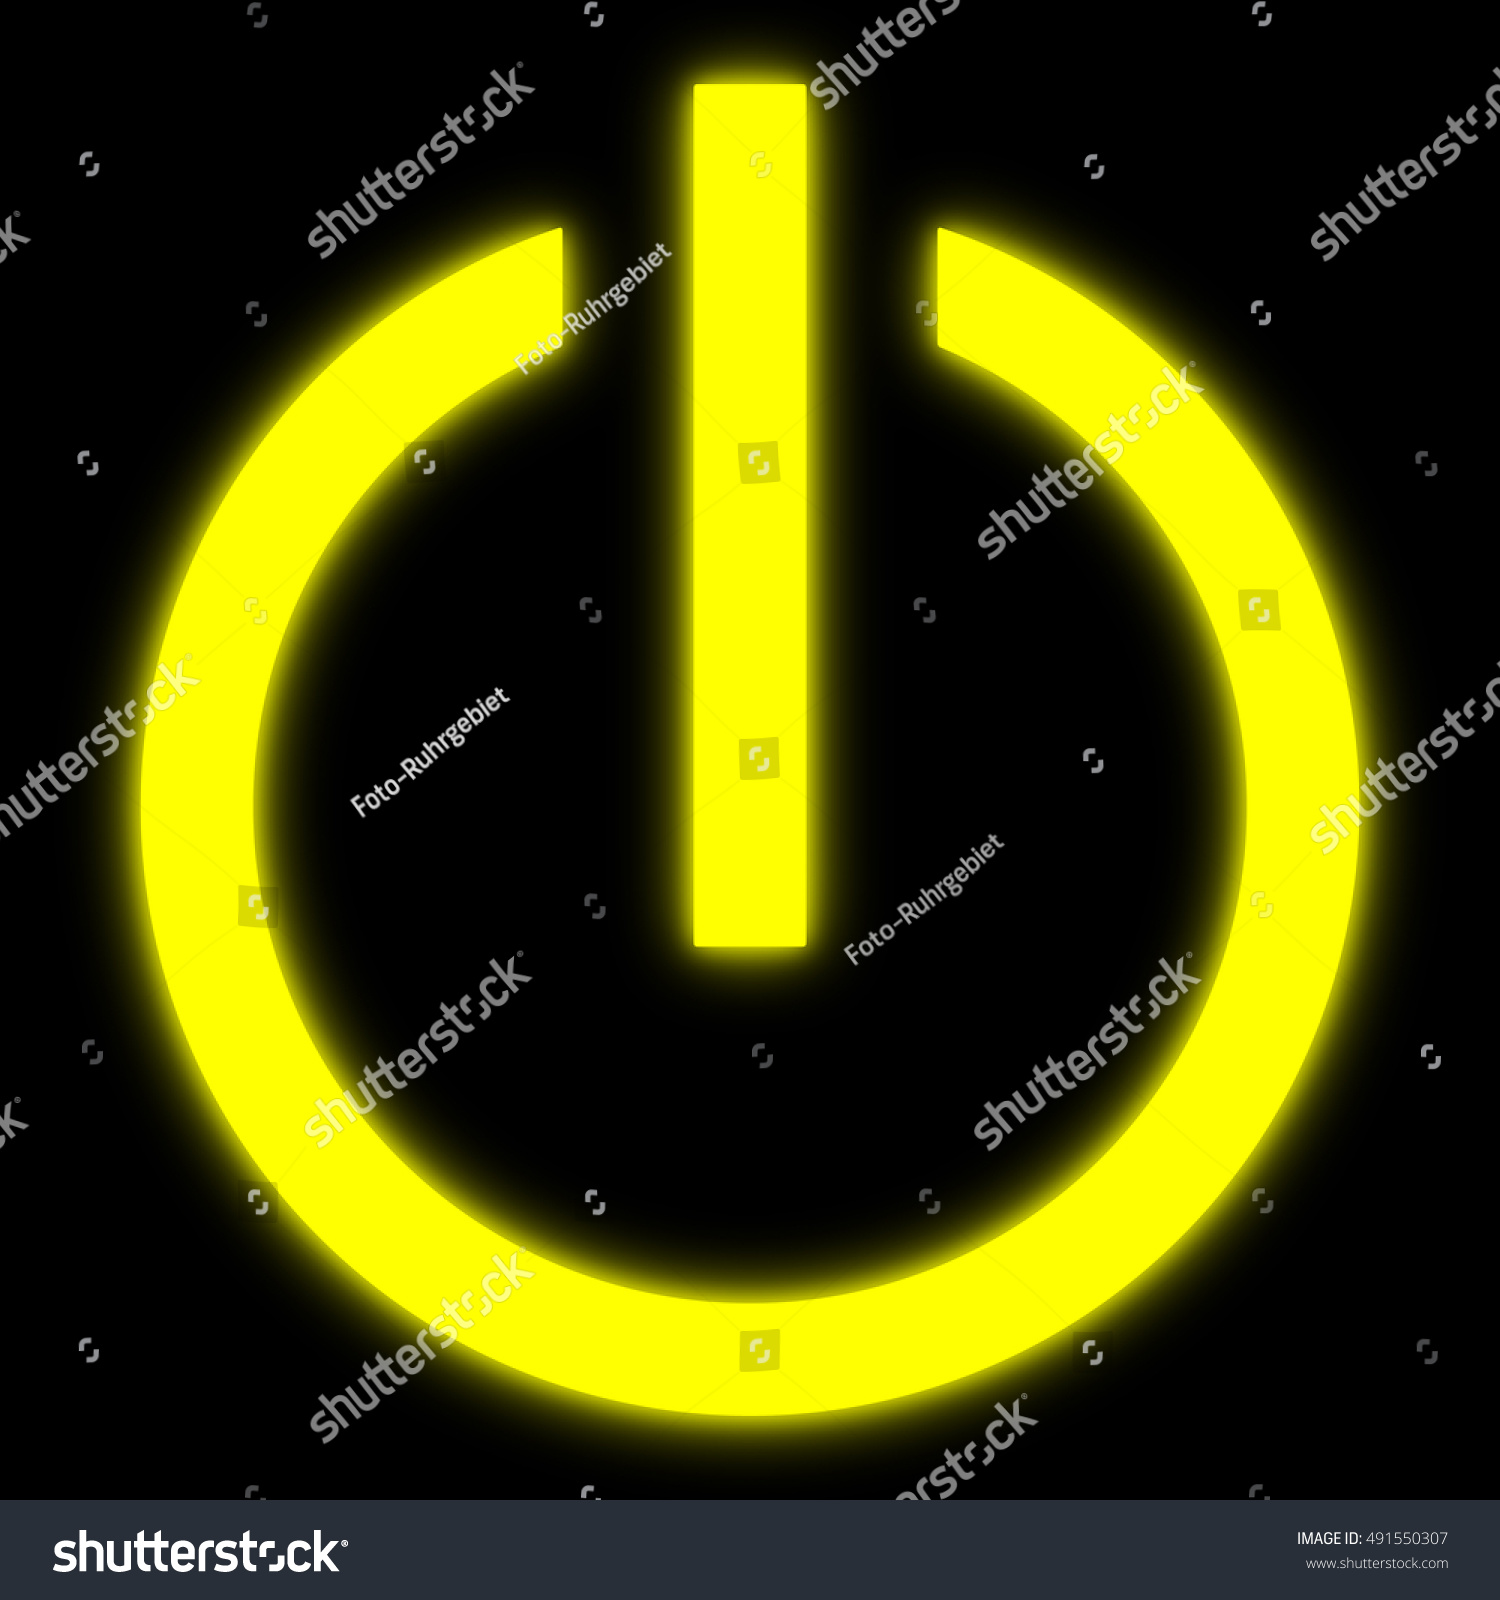 Symbol onoff switch electrical equipment stock illustration symbol of an on off switch of electrical equipment buycottarizona Choice Image